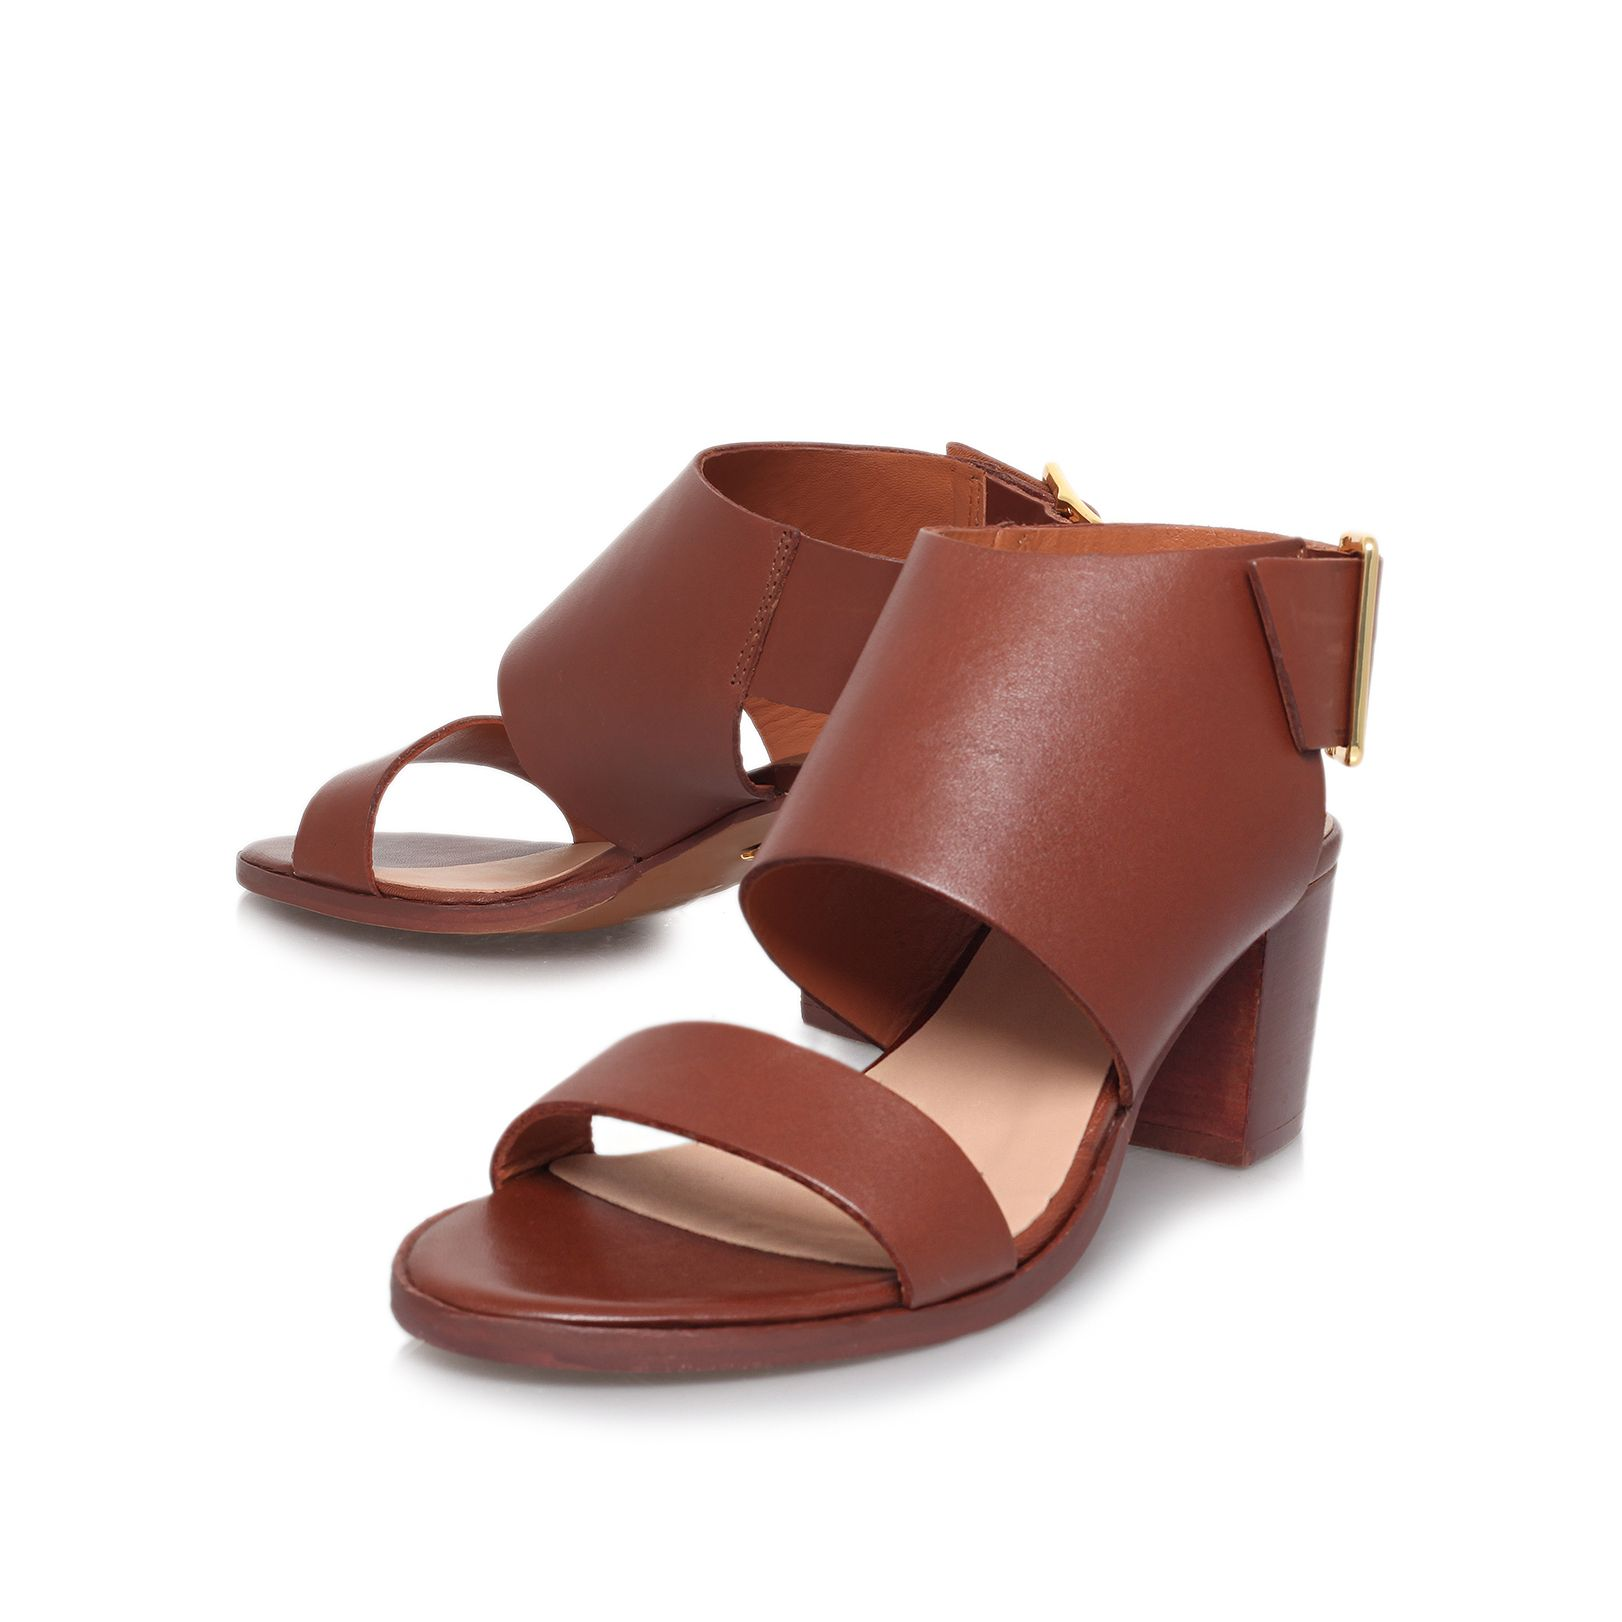 Mabel mid heel sandals